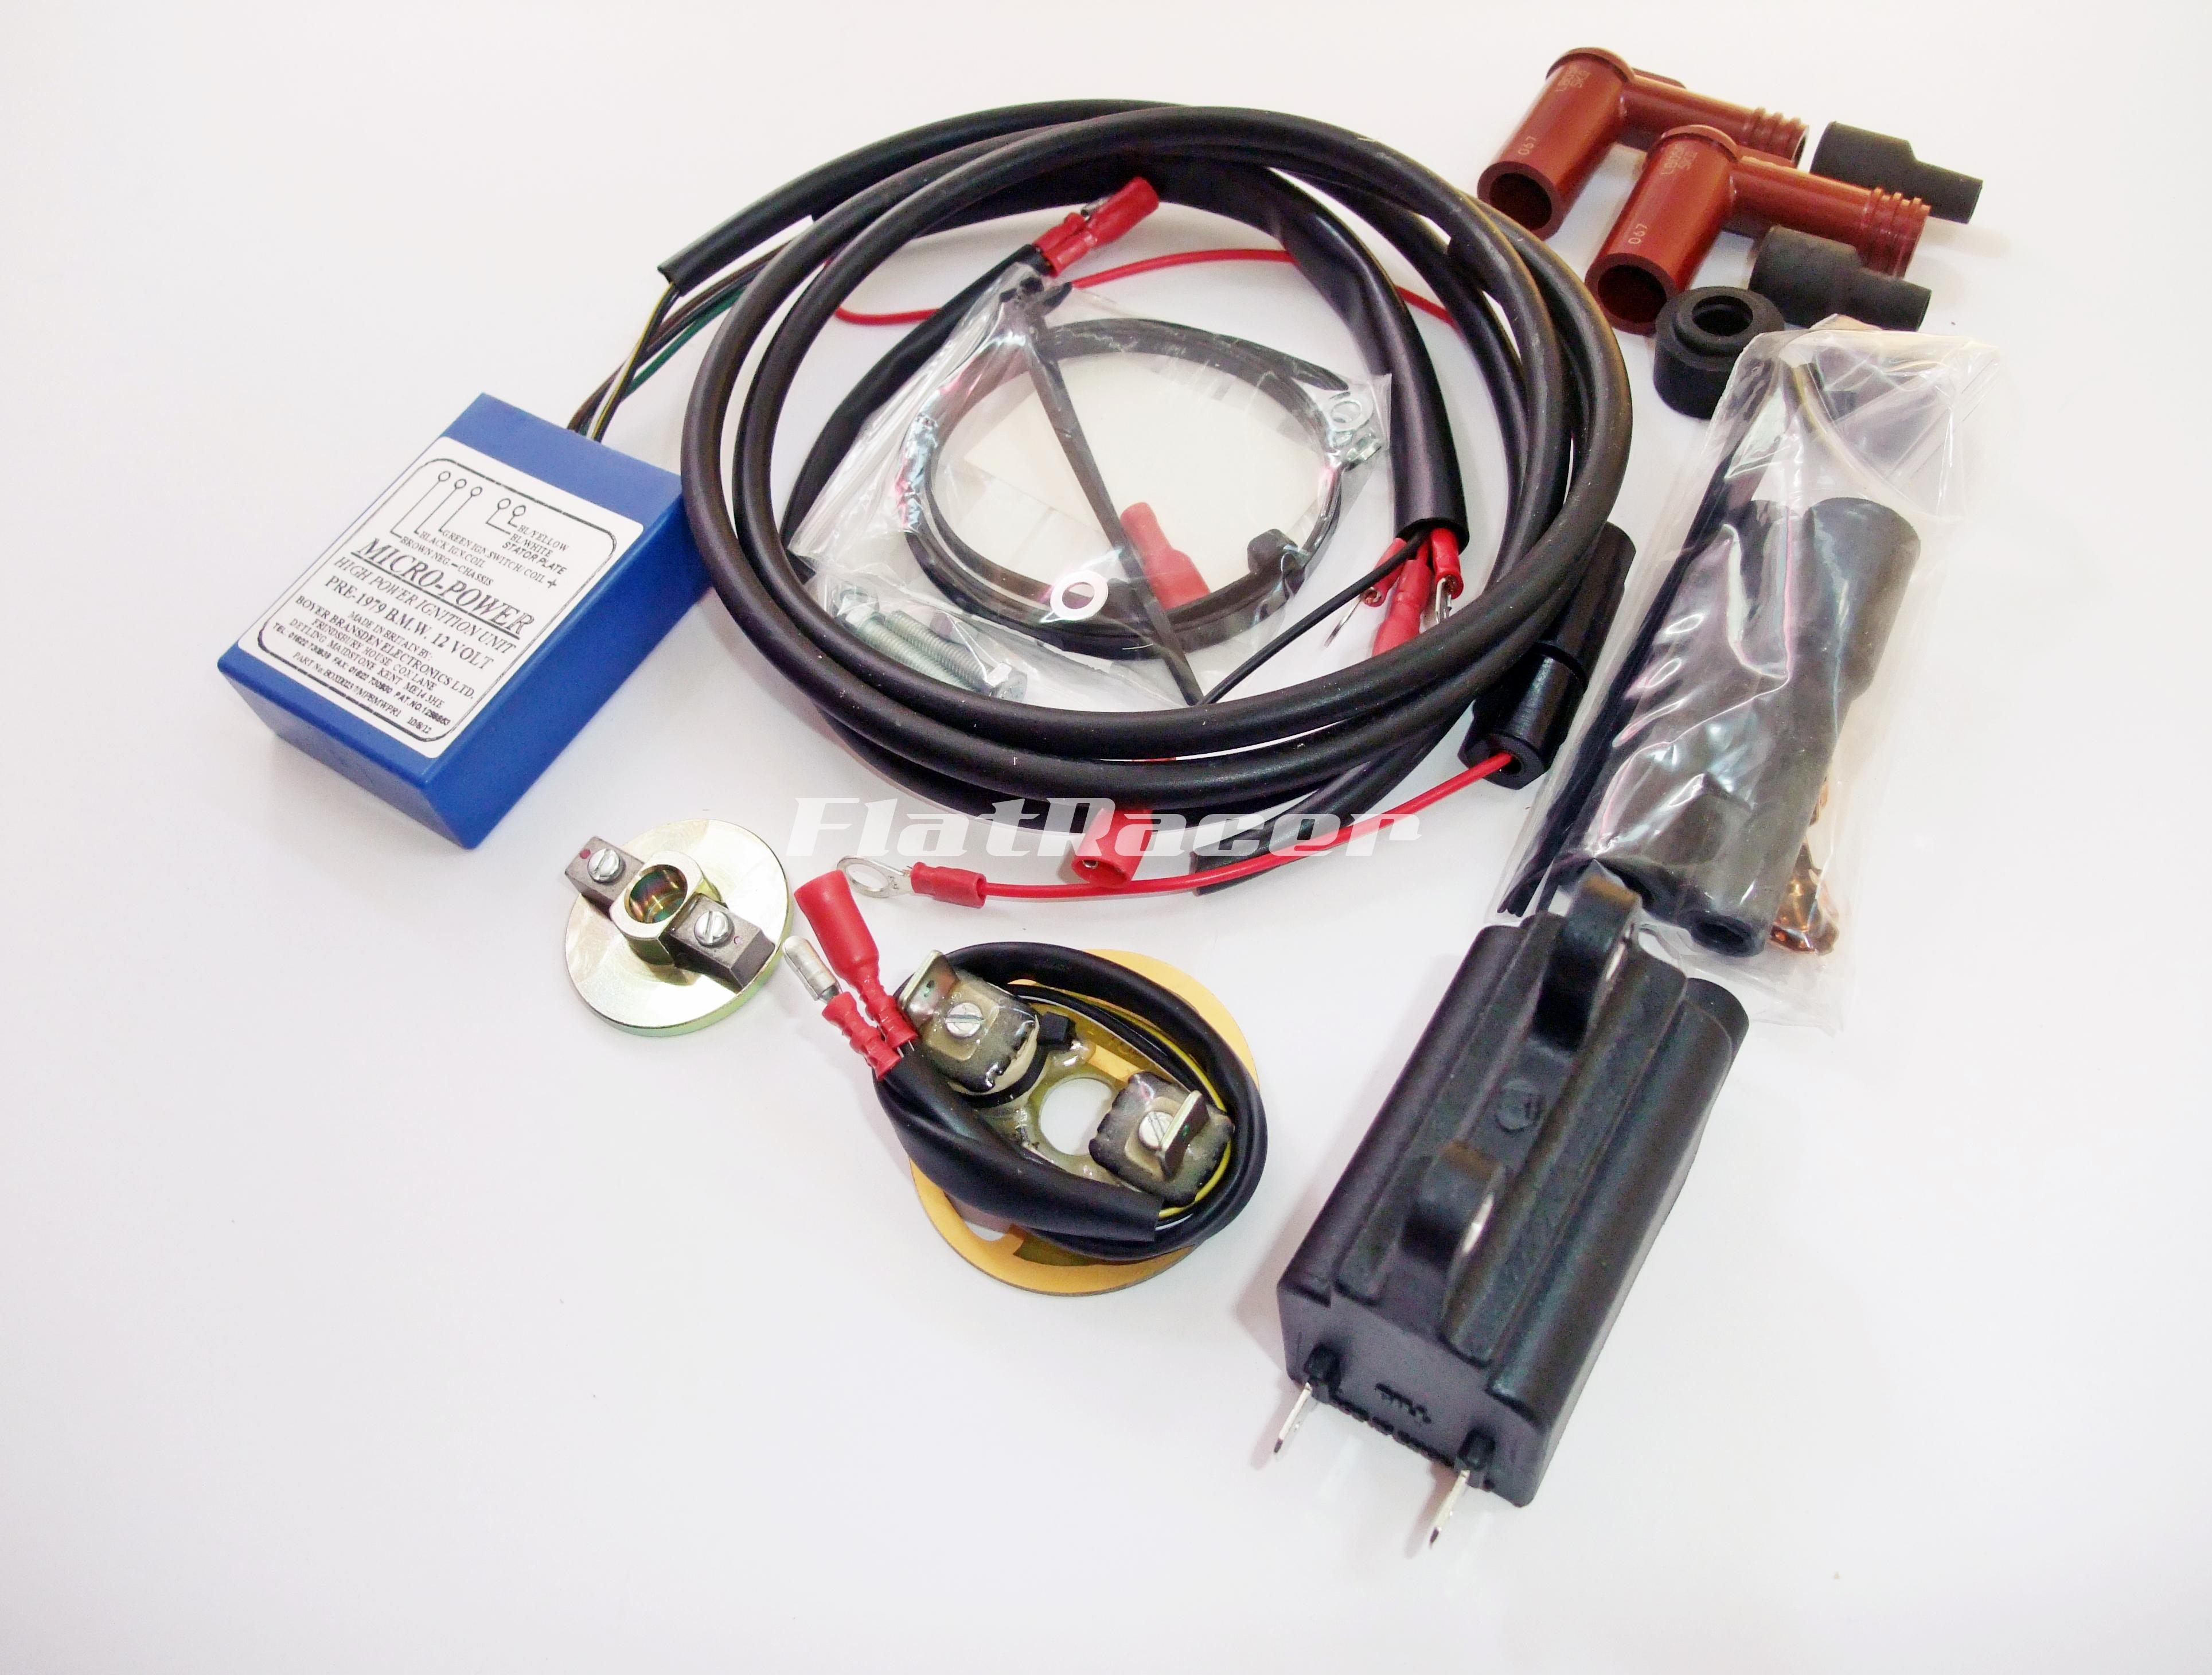 Boyer Bransden BMW 1979-1980 Micro Power electronic Ignition kit